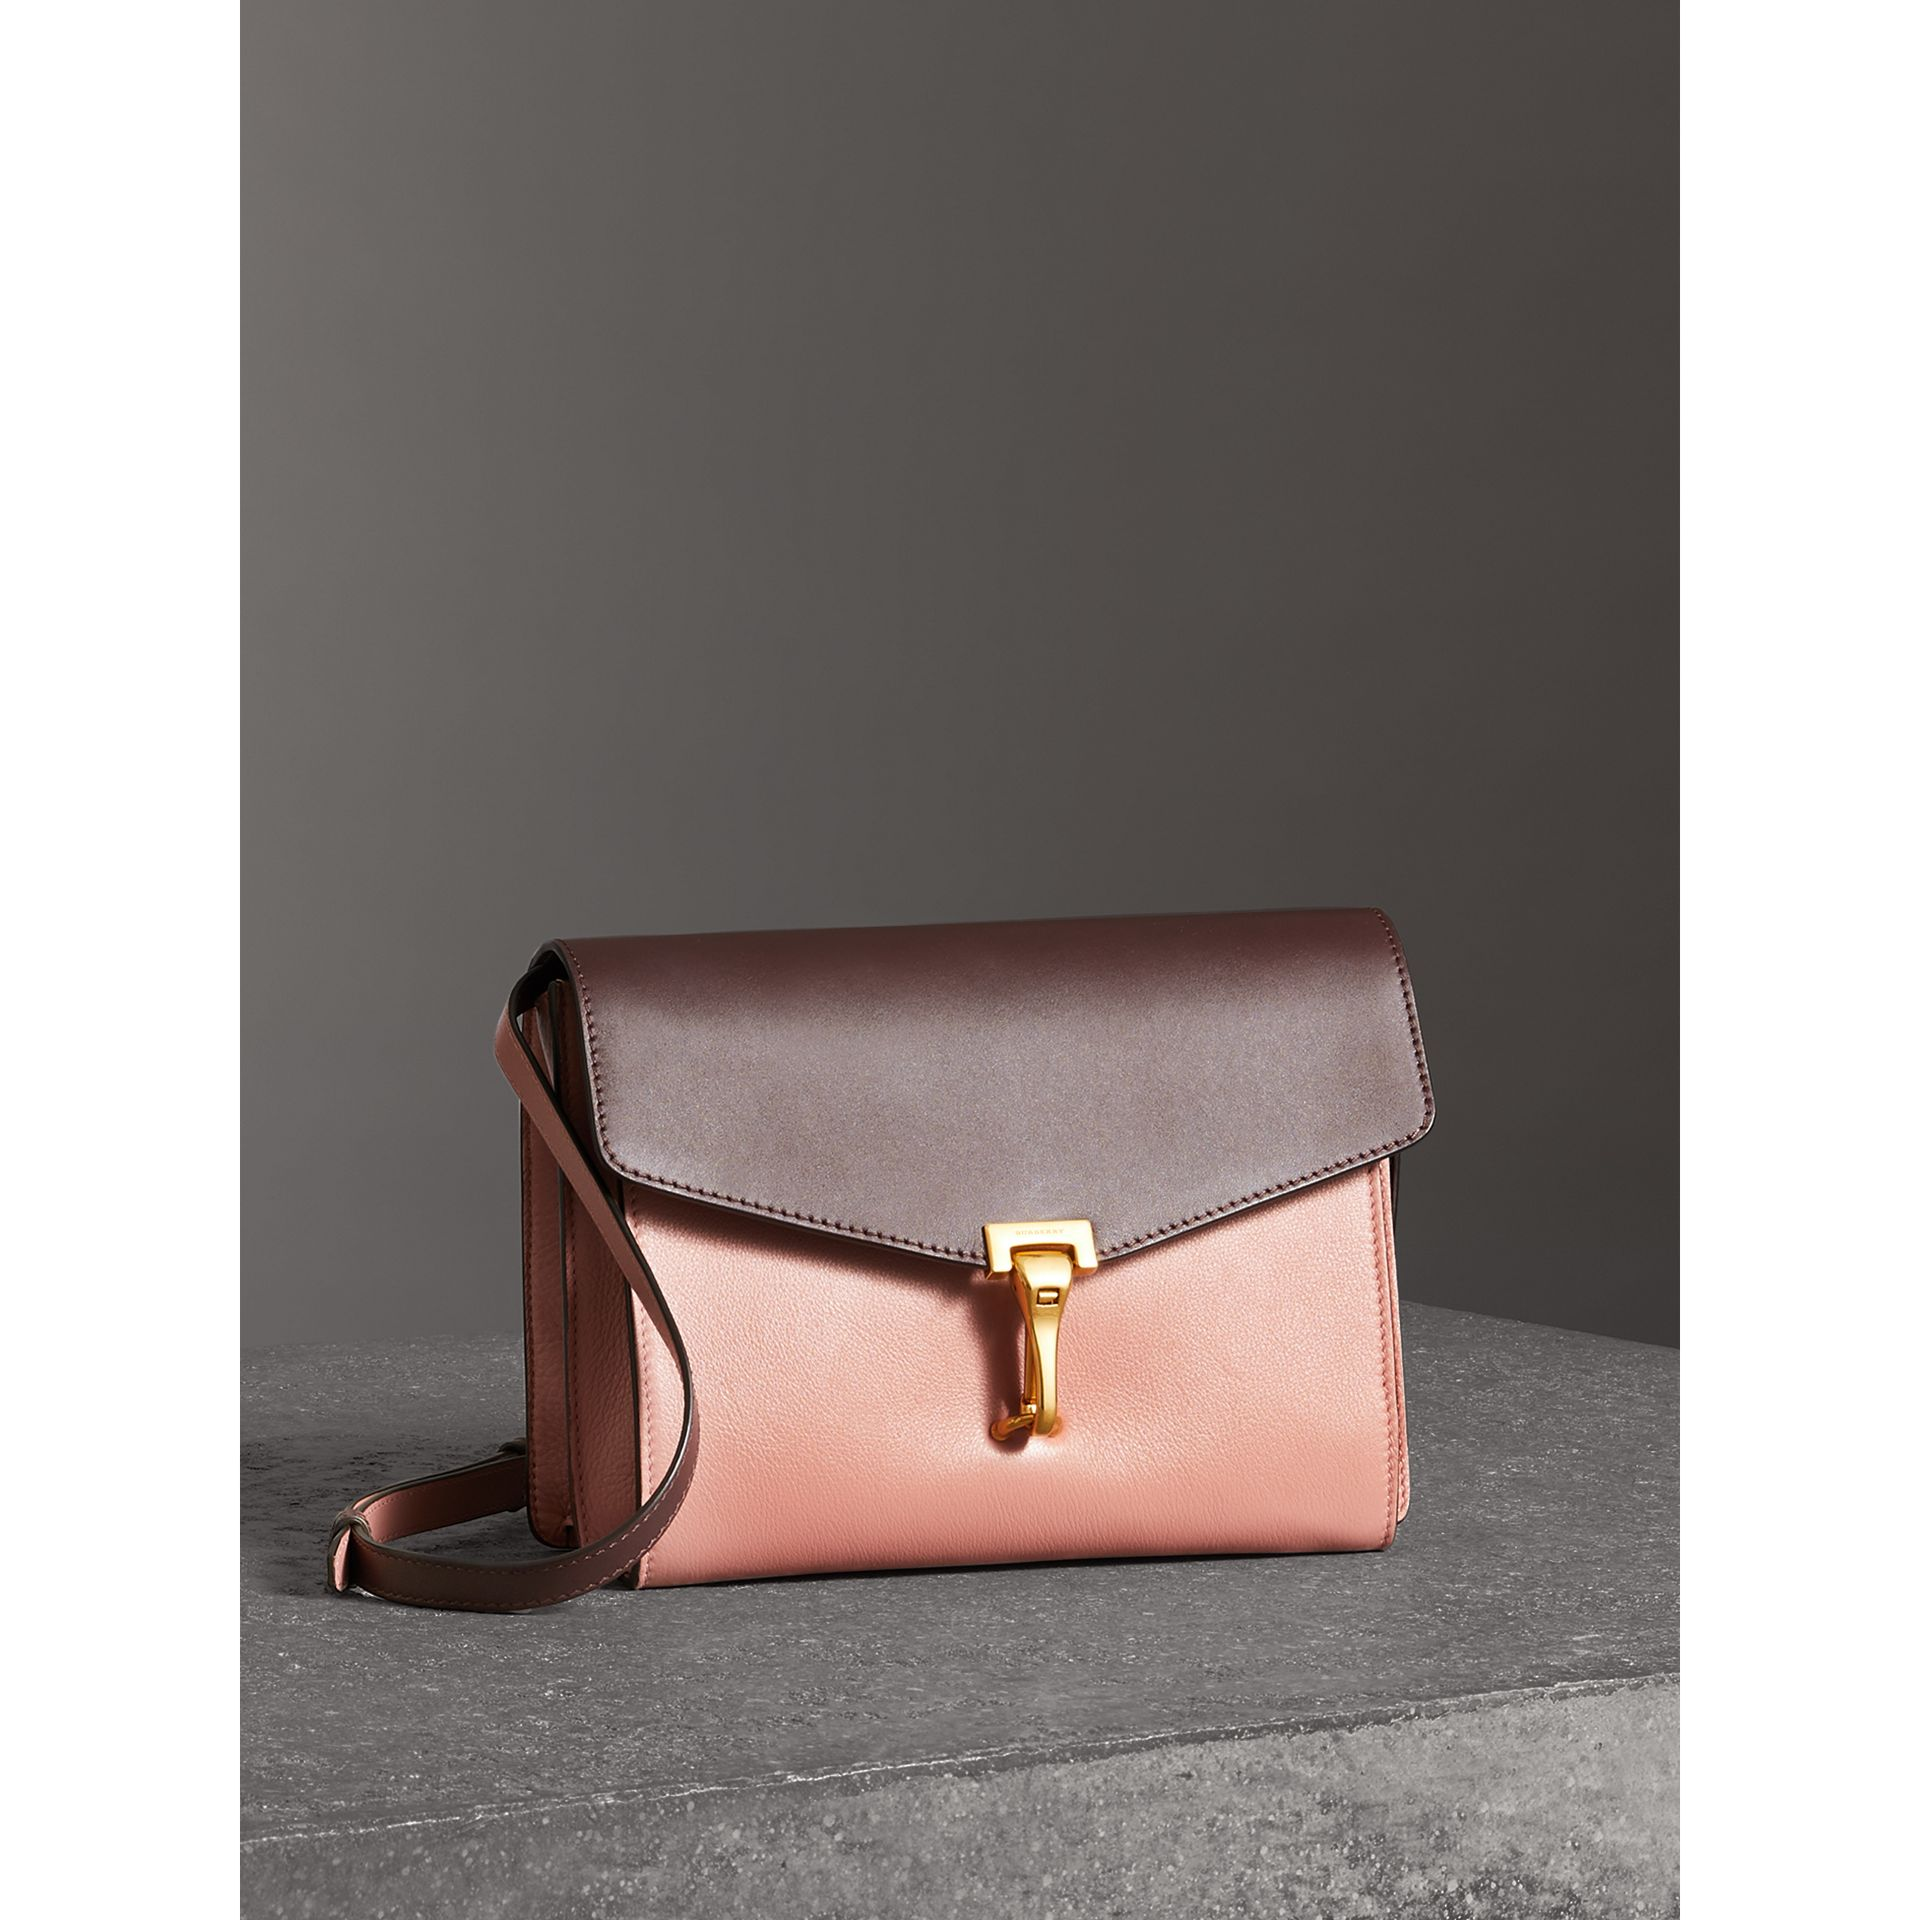 Two-tone Leather Crossbody Bag in Dusty Rose/deep Claret - Women | Burberry Australia - gallery image 4